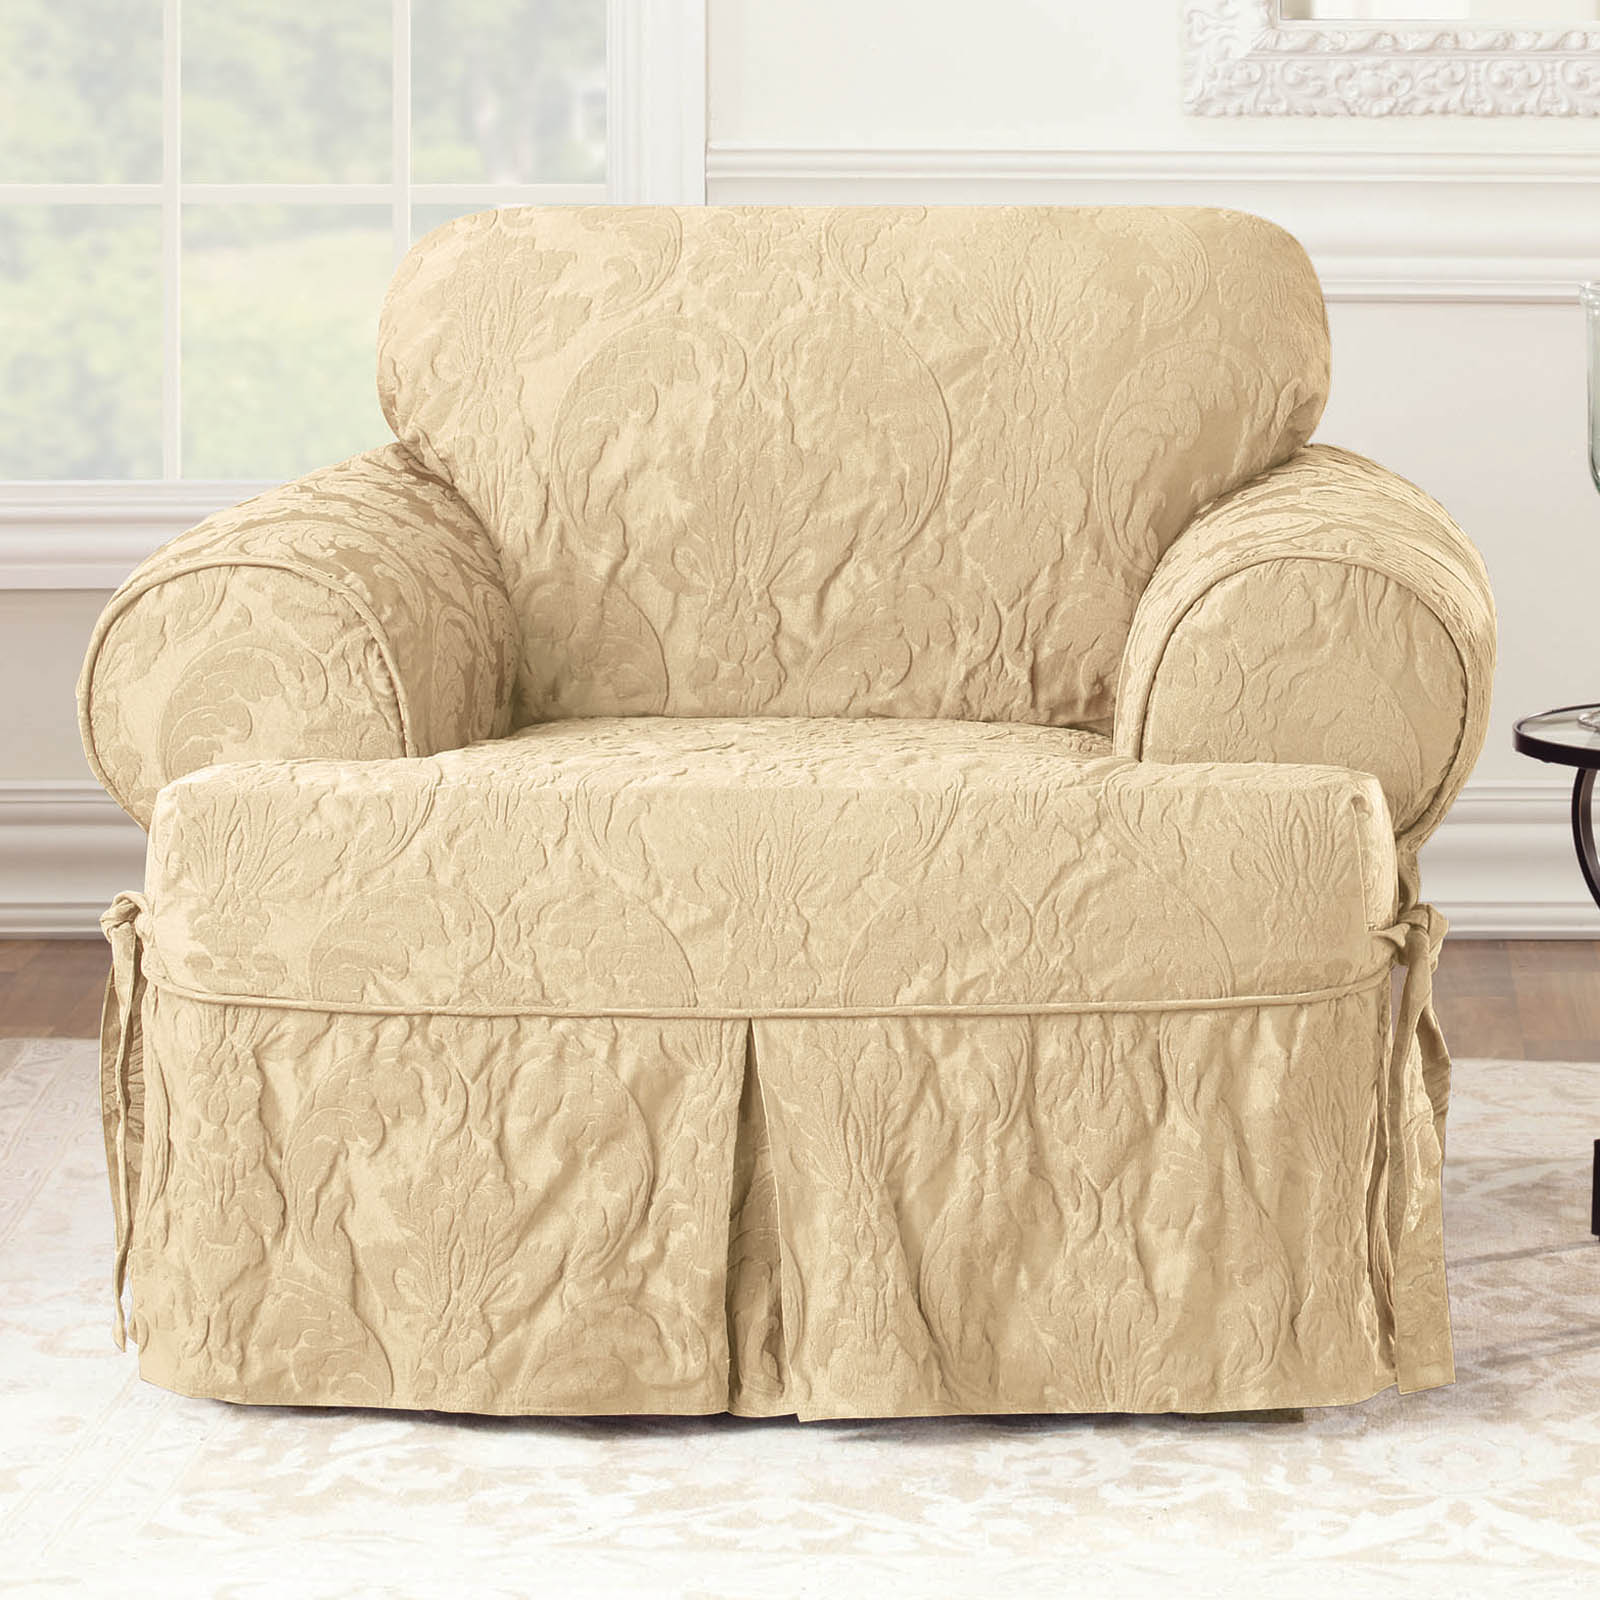 Sure Fit Matelasse Damask 1 Piece T Cushion Kick Pleat Chair Slipcover